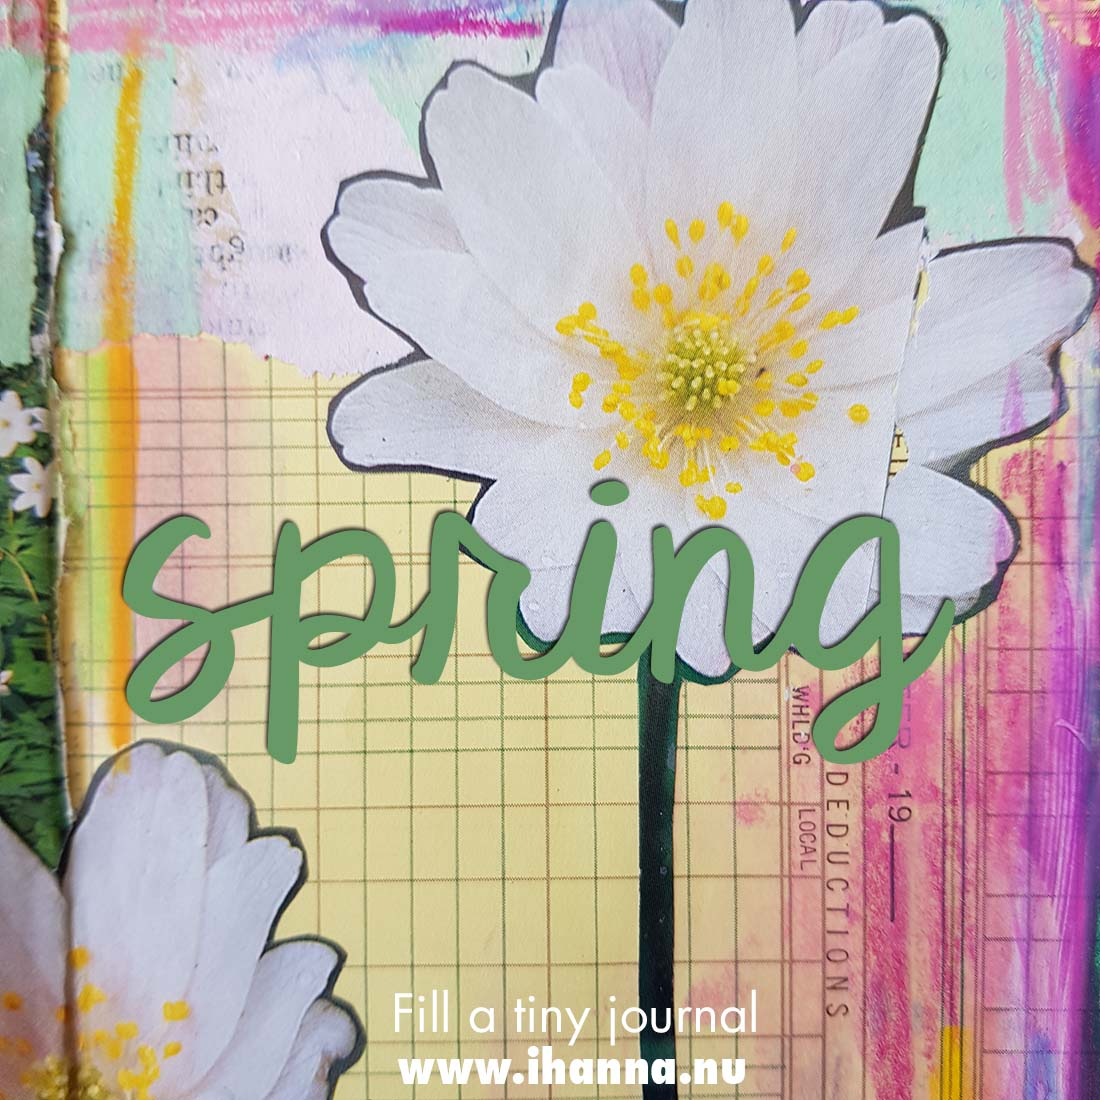 Fill a tiny journal: Spring